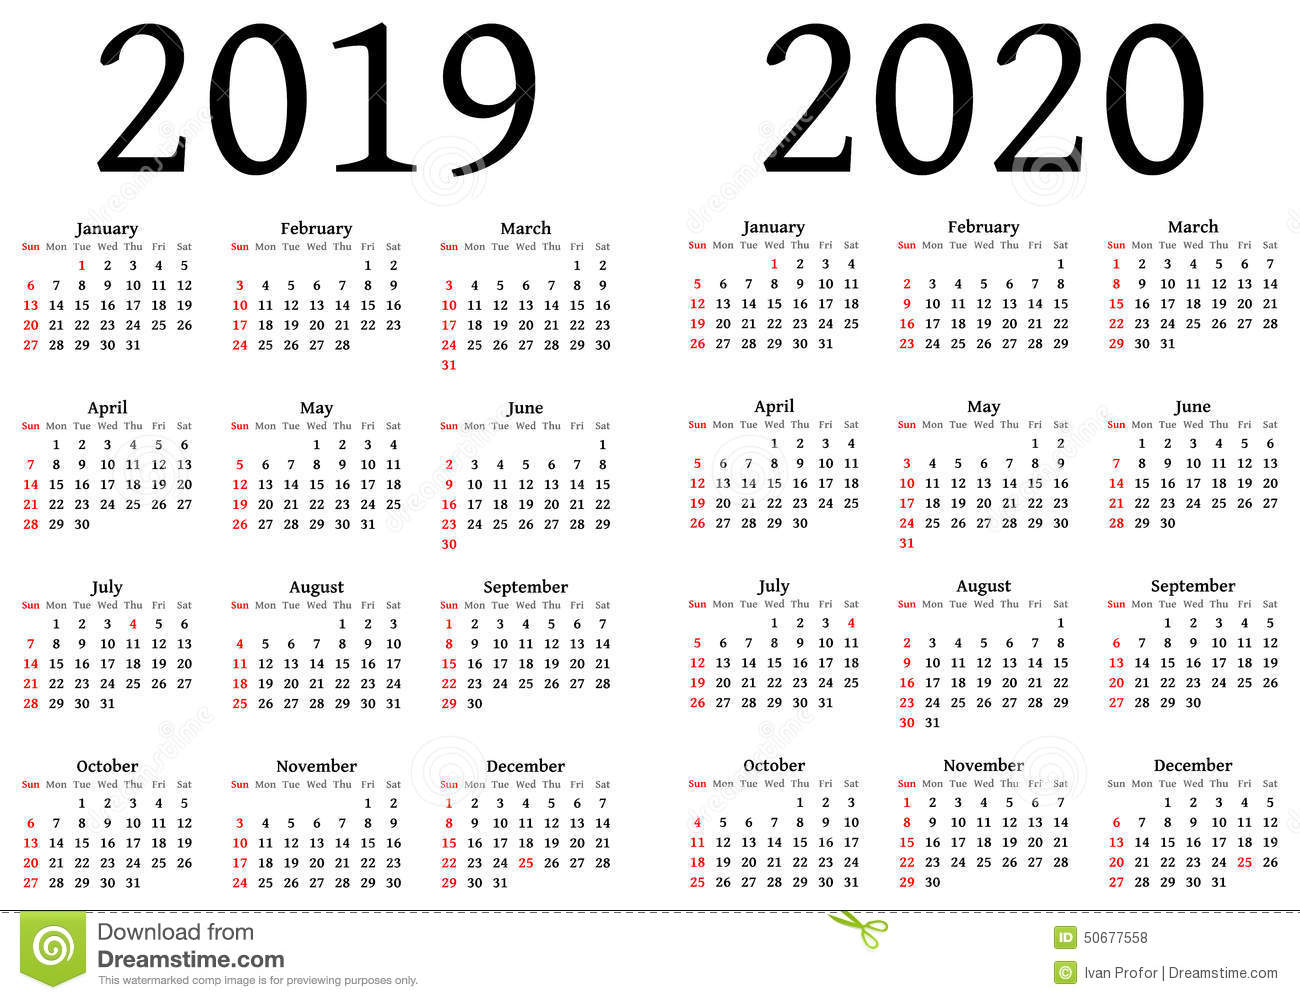 Printable Calendar For 2019 And 2020 | Printable Calendar 2019 pertaining to 2020 Printable Calendar With Large Squares